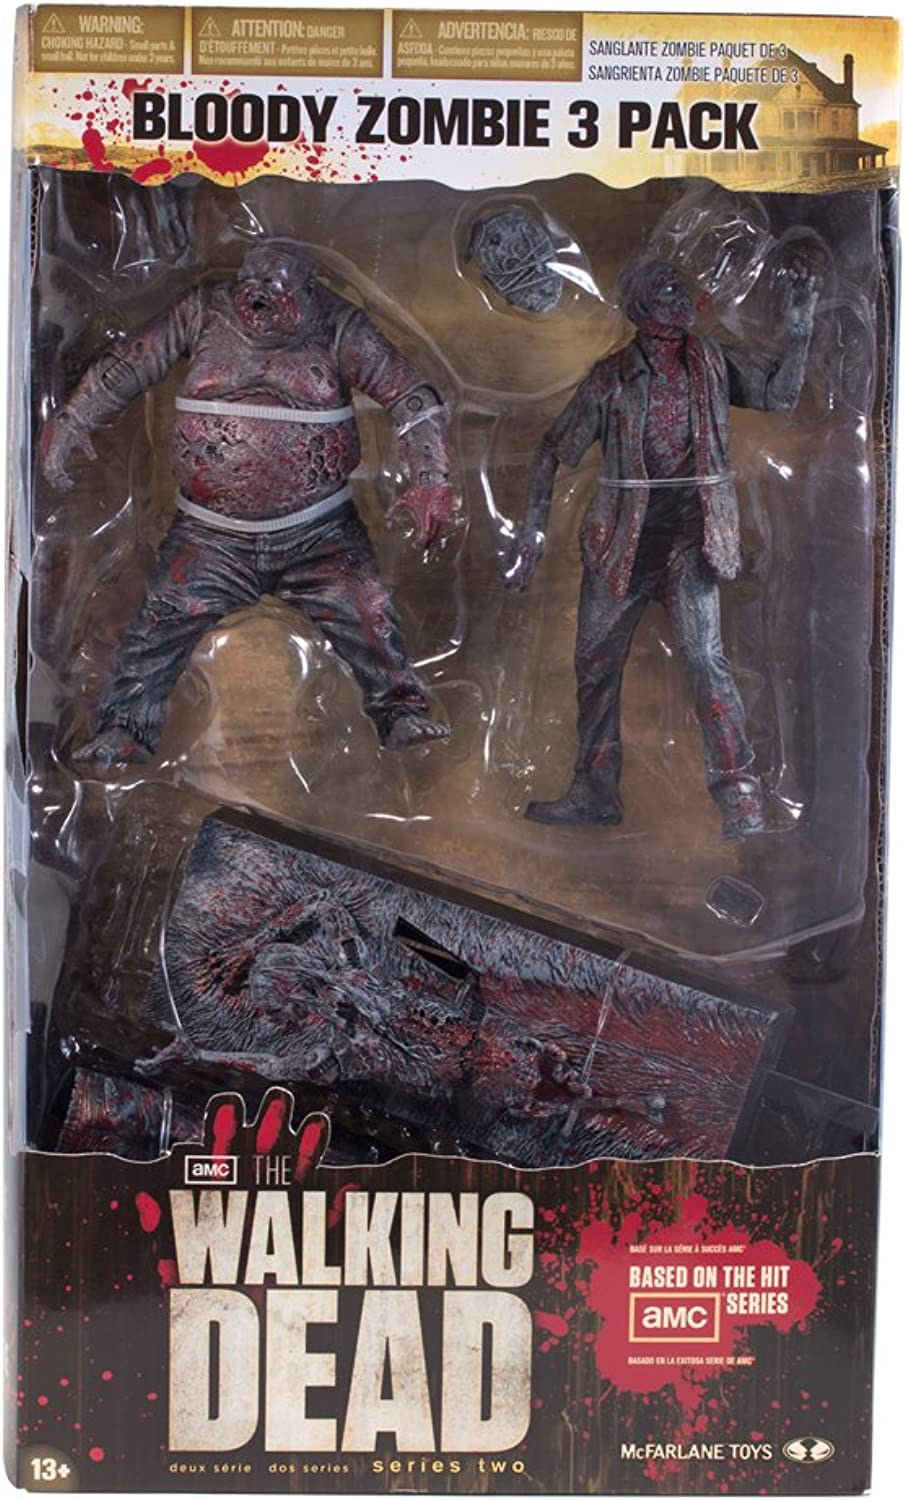 McFarlane Toys The Walking Dead TV  Bloody Black and White Zombie, 3 Pack